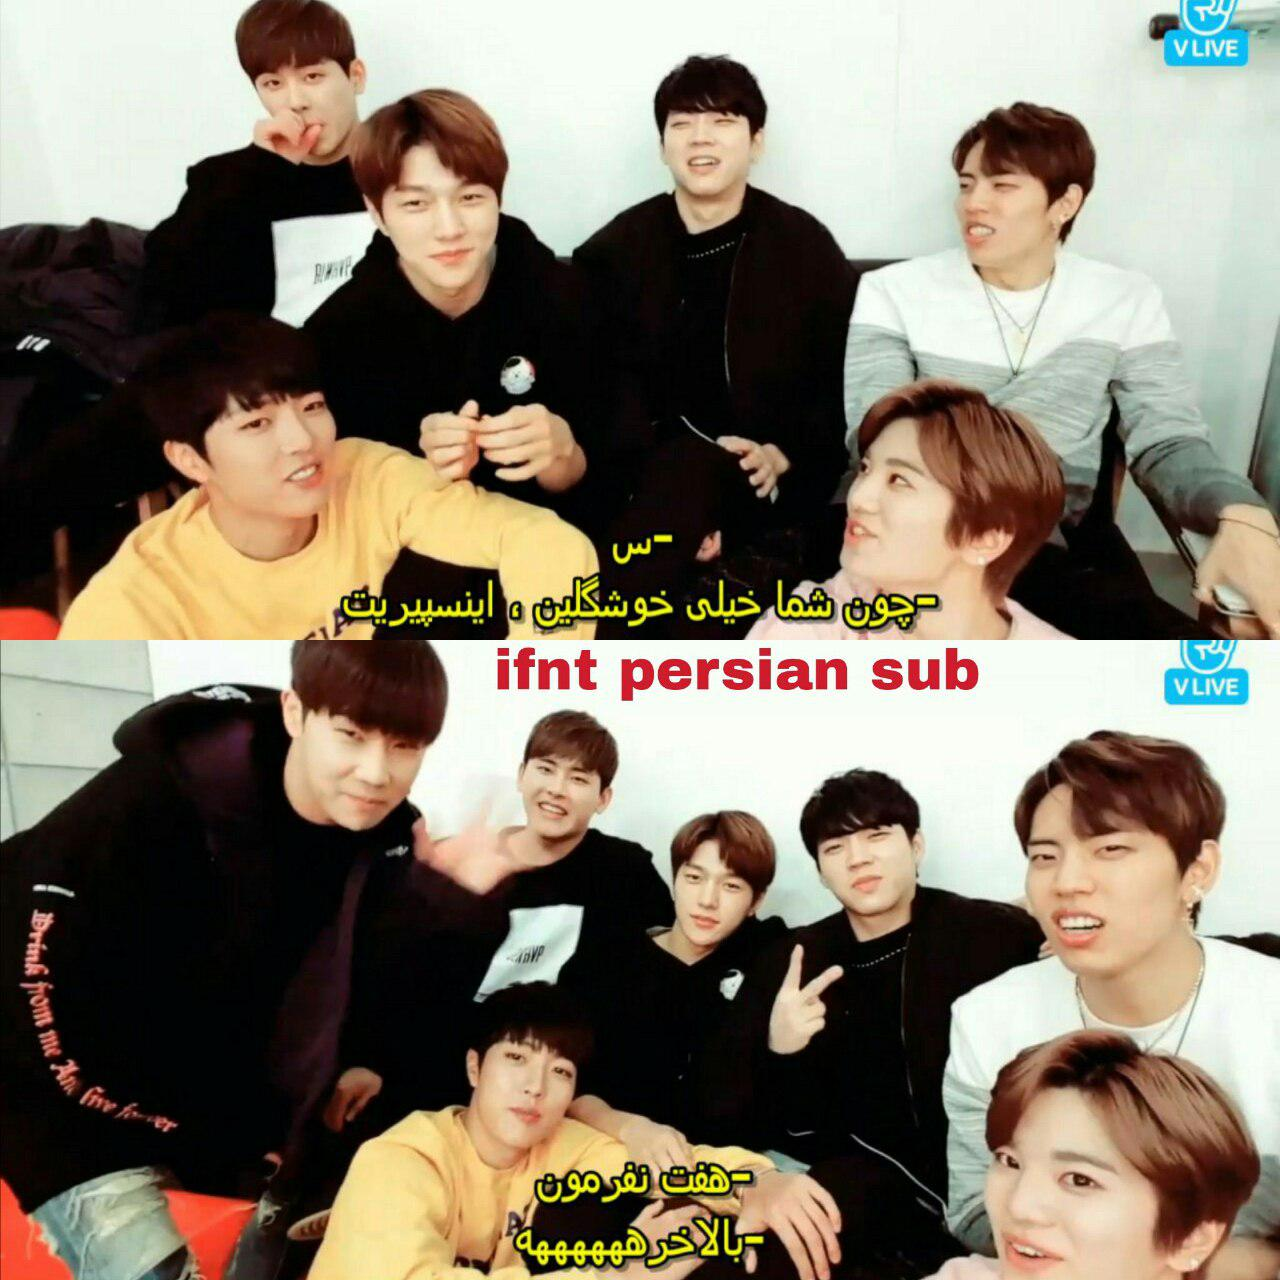 161214 INFINITE LIVE ON V APP + PERSIAN SUB